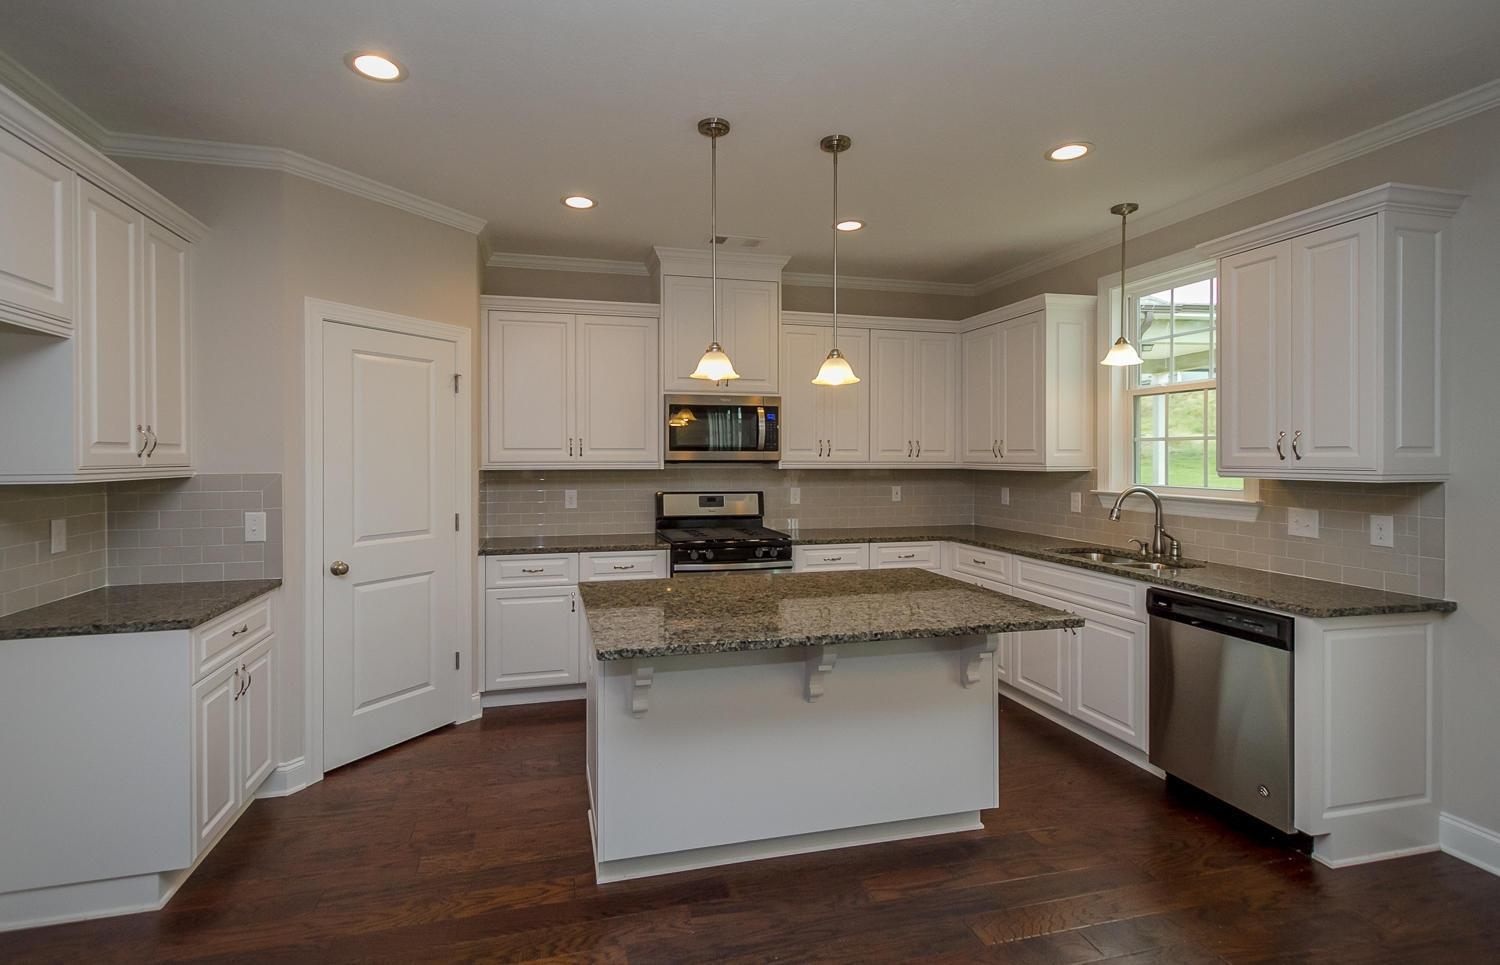 Kitchen featured in the Fairport II By Ivey Residential in Augusta, GA